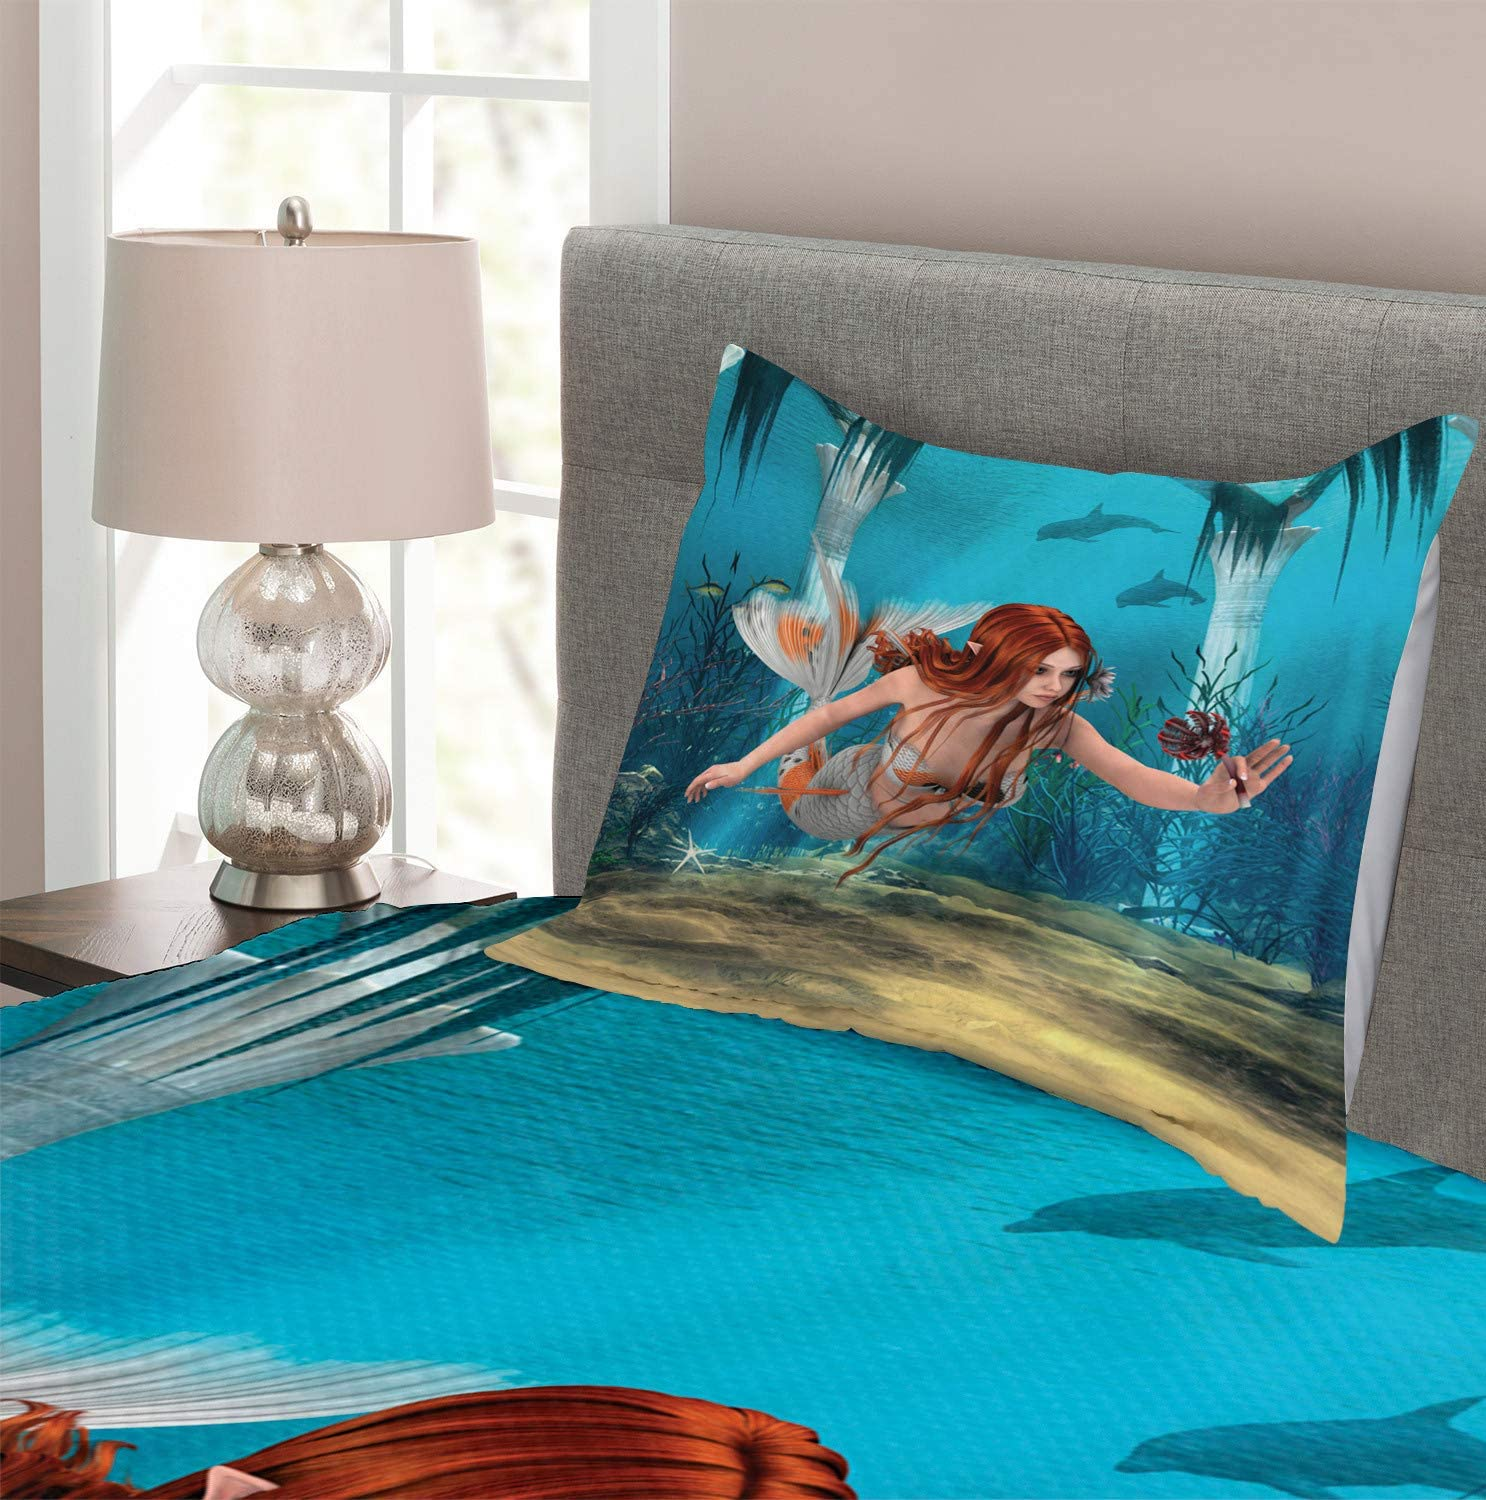 Twin Size Llama Guanaco South American Animals Childish Hand Drawn Style Cartoon Art Print Blush Blue Decorative Quilted 2 Piece Coverlet Set with Pillow Sham Ambesonne Hipster Bedspread